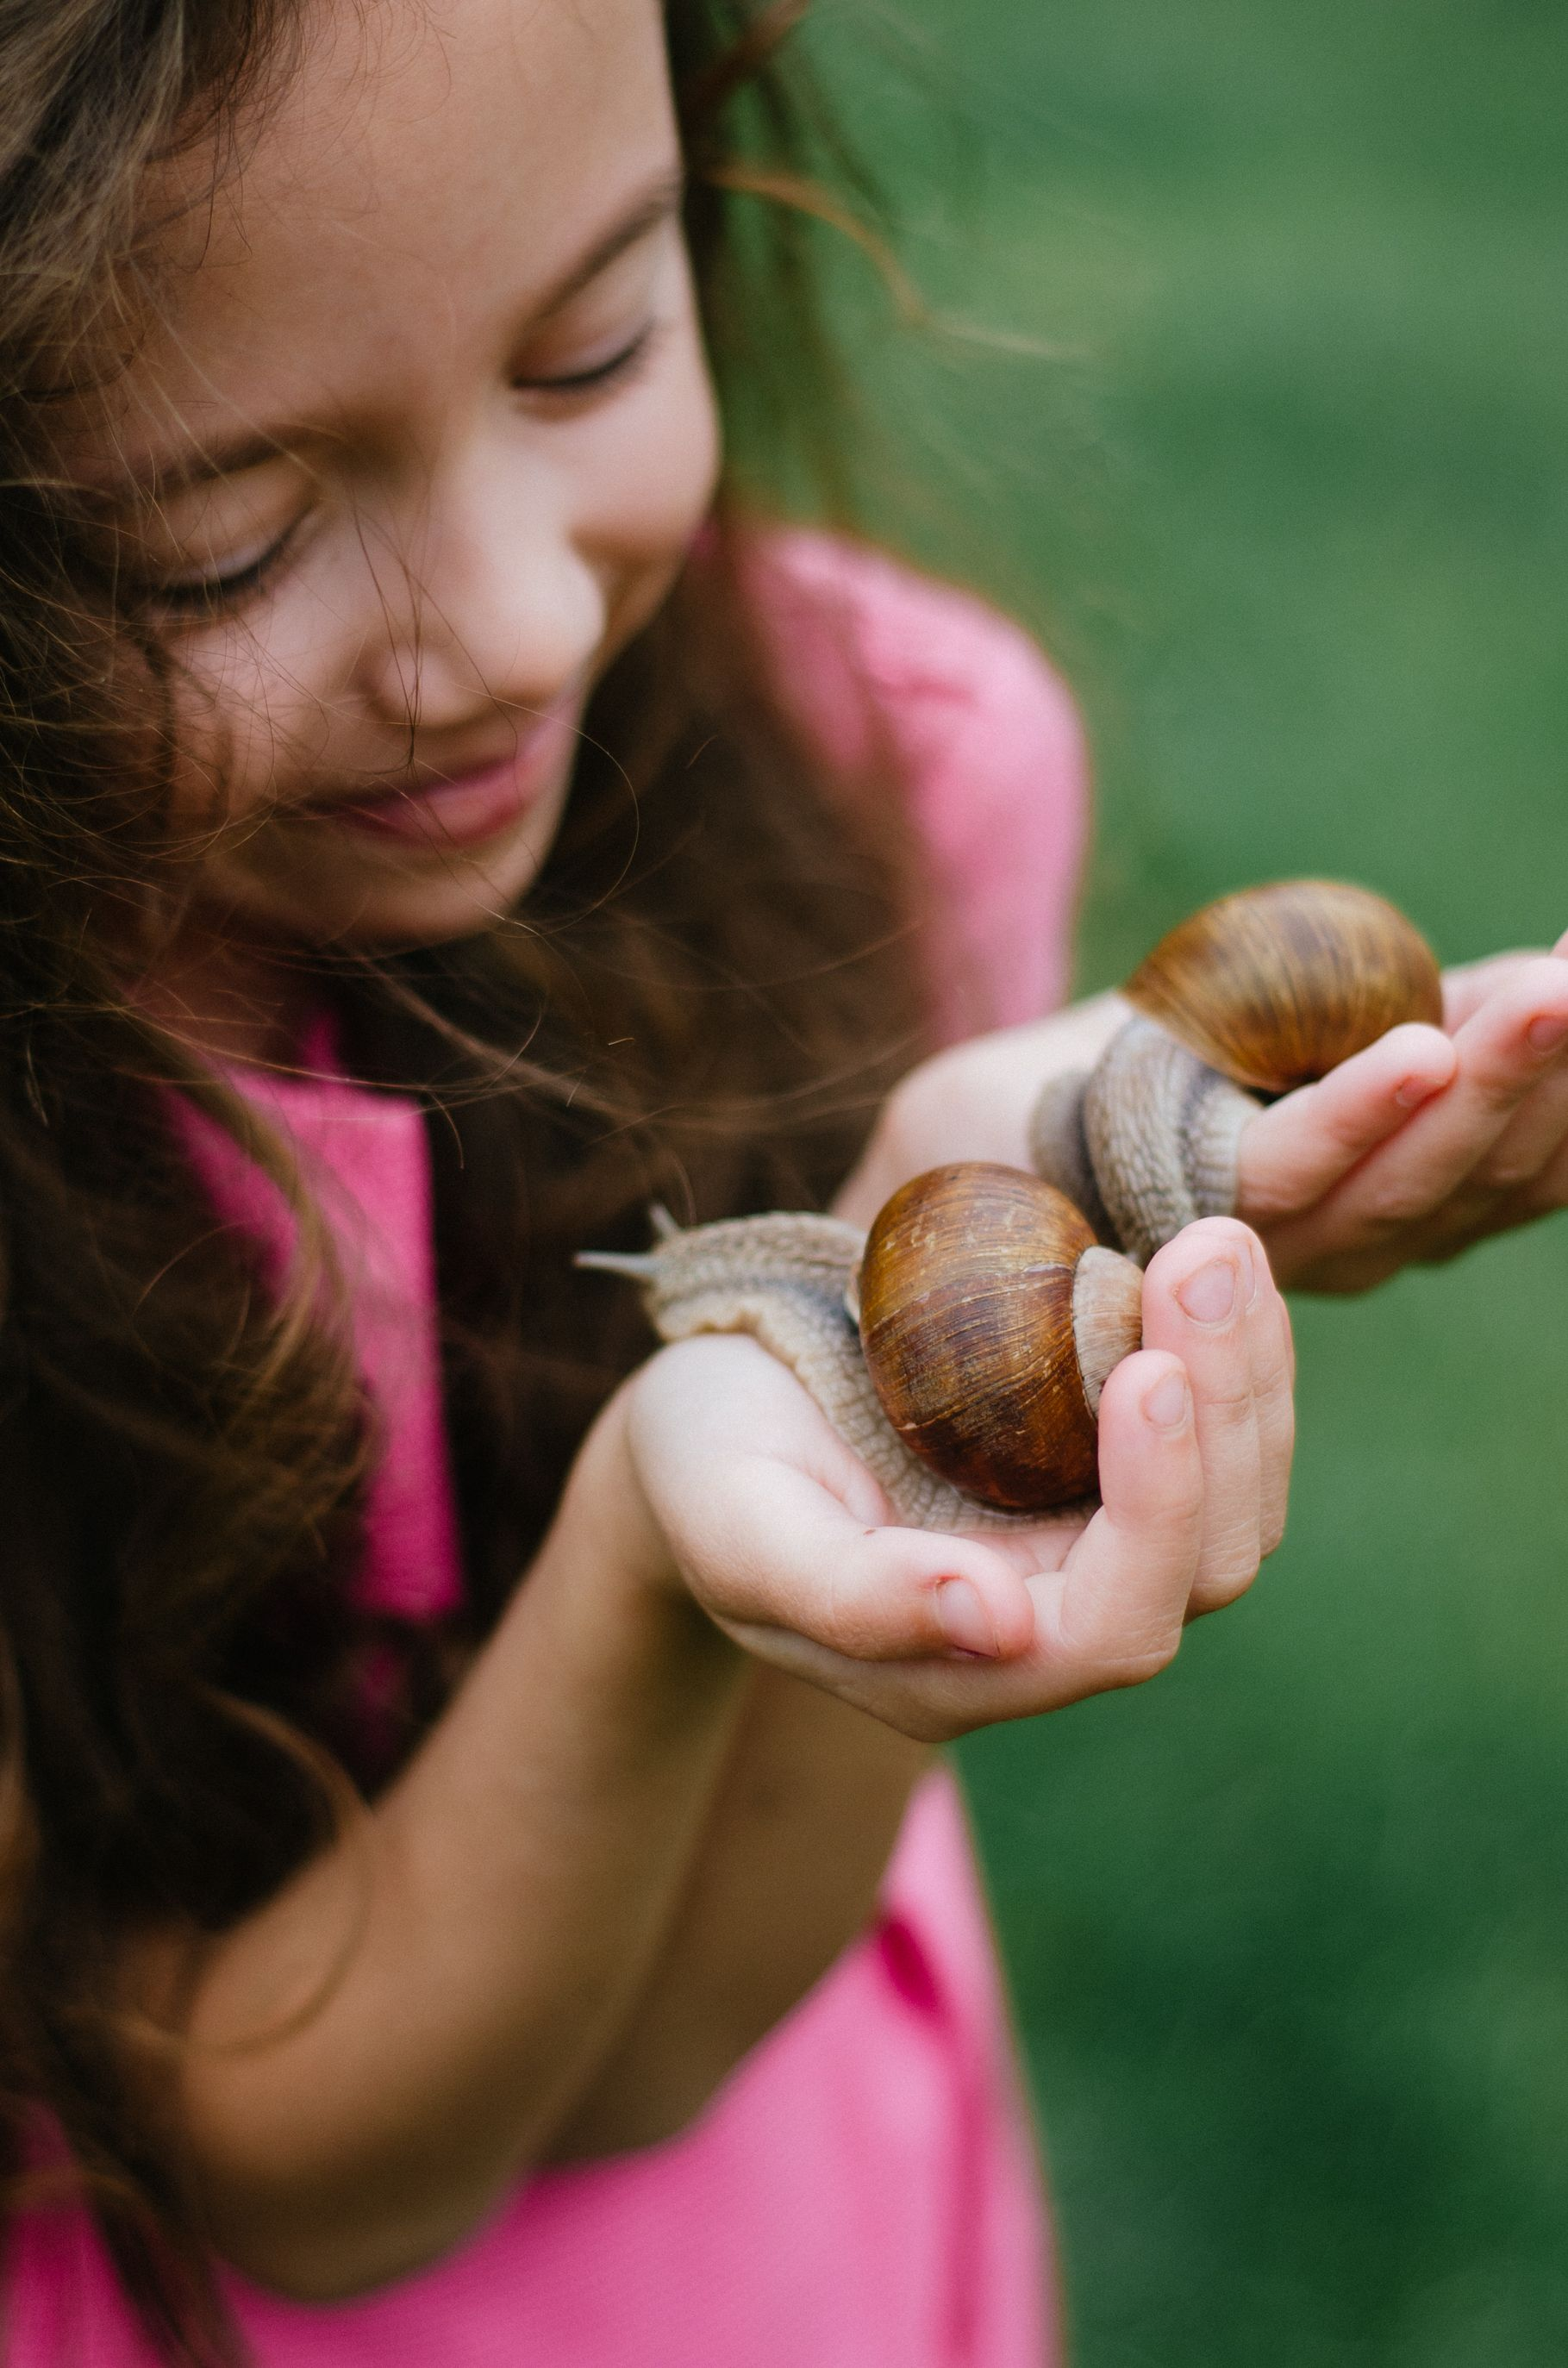 Snails Are Low Maintenance Indoor Pets And Easy To Take Care Of That S Why Snails Are The Best Pets For Your Child Pet Snails Easy Pets Snail